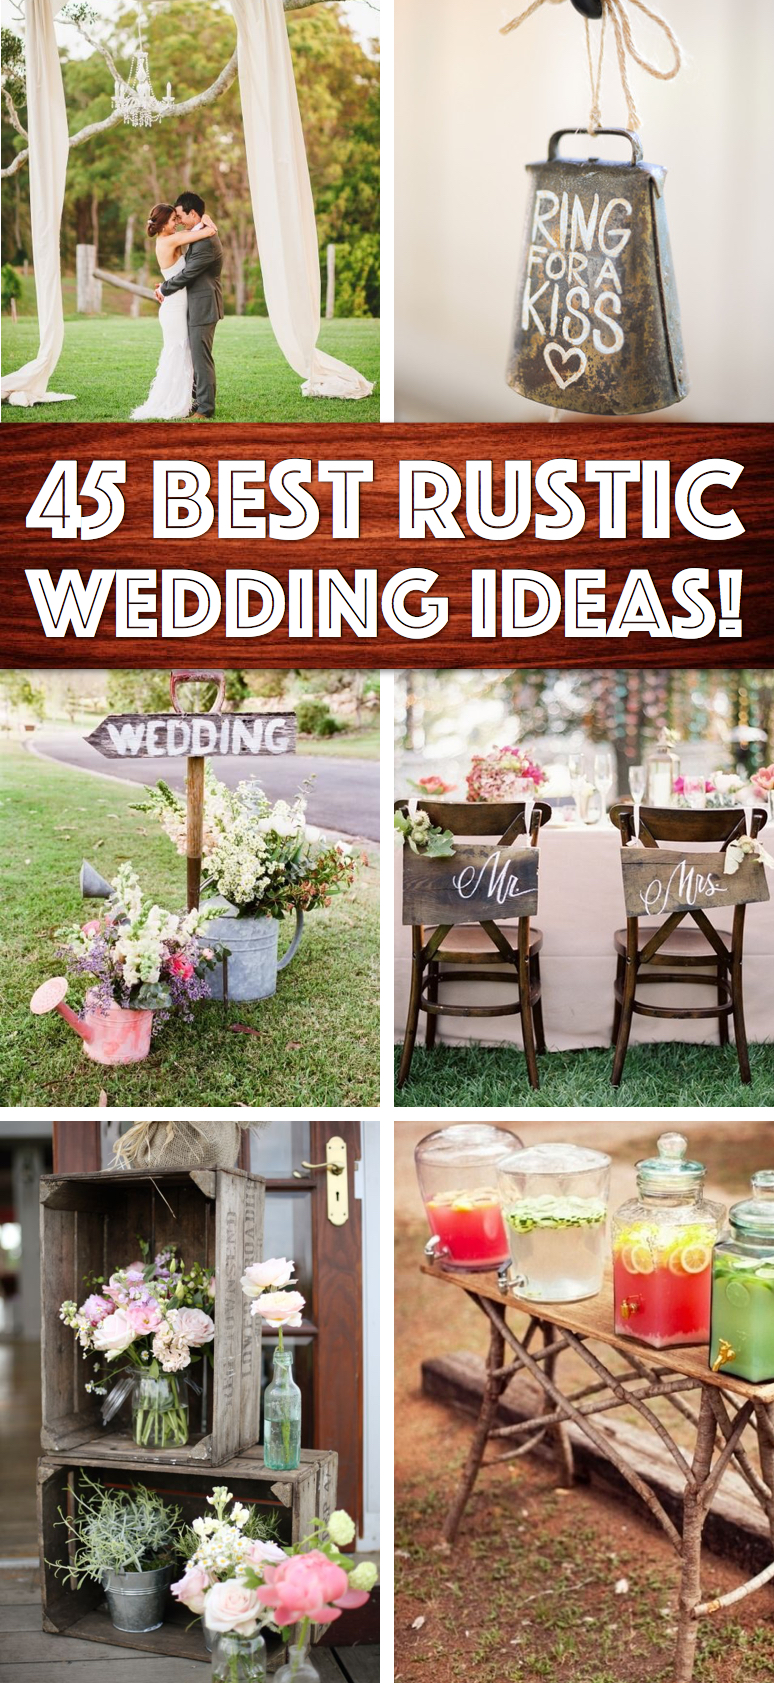 Home Wedding Decoration Ideas simple home wedding decoration ideas on decorations with outdoor decorations wedding decorations and simple 14 Shine On Your Wedding Day With These Breath Taking Rustic Wedding Ideas